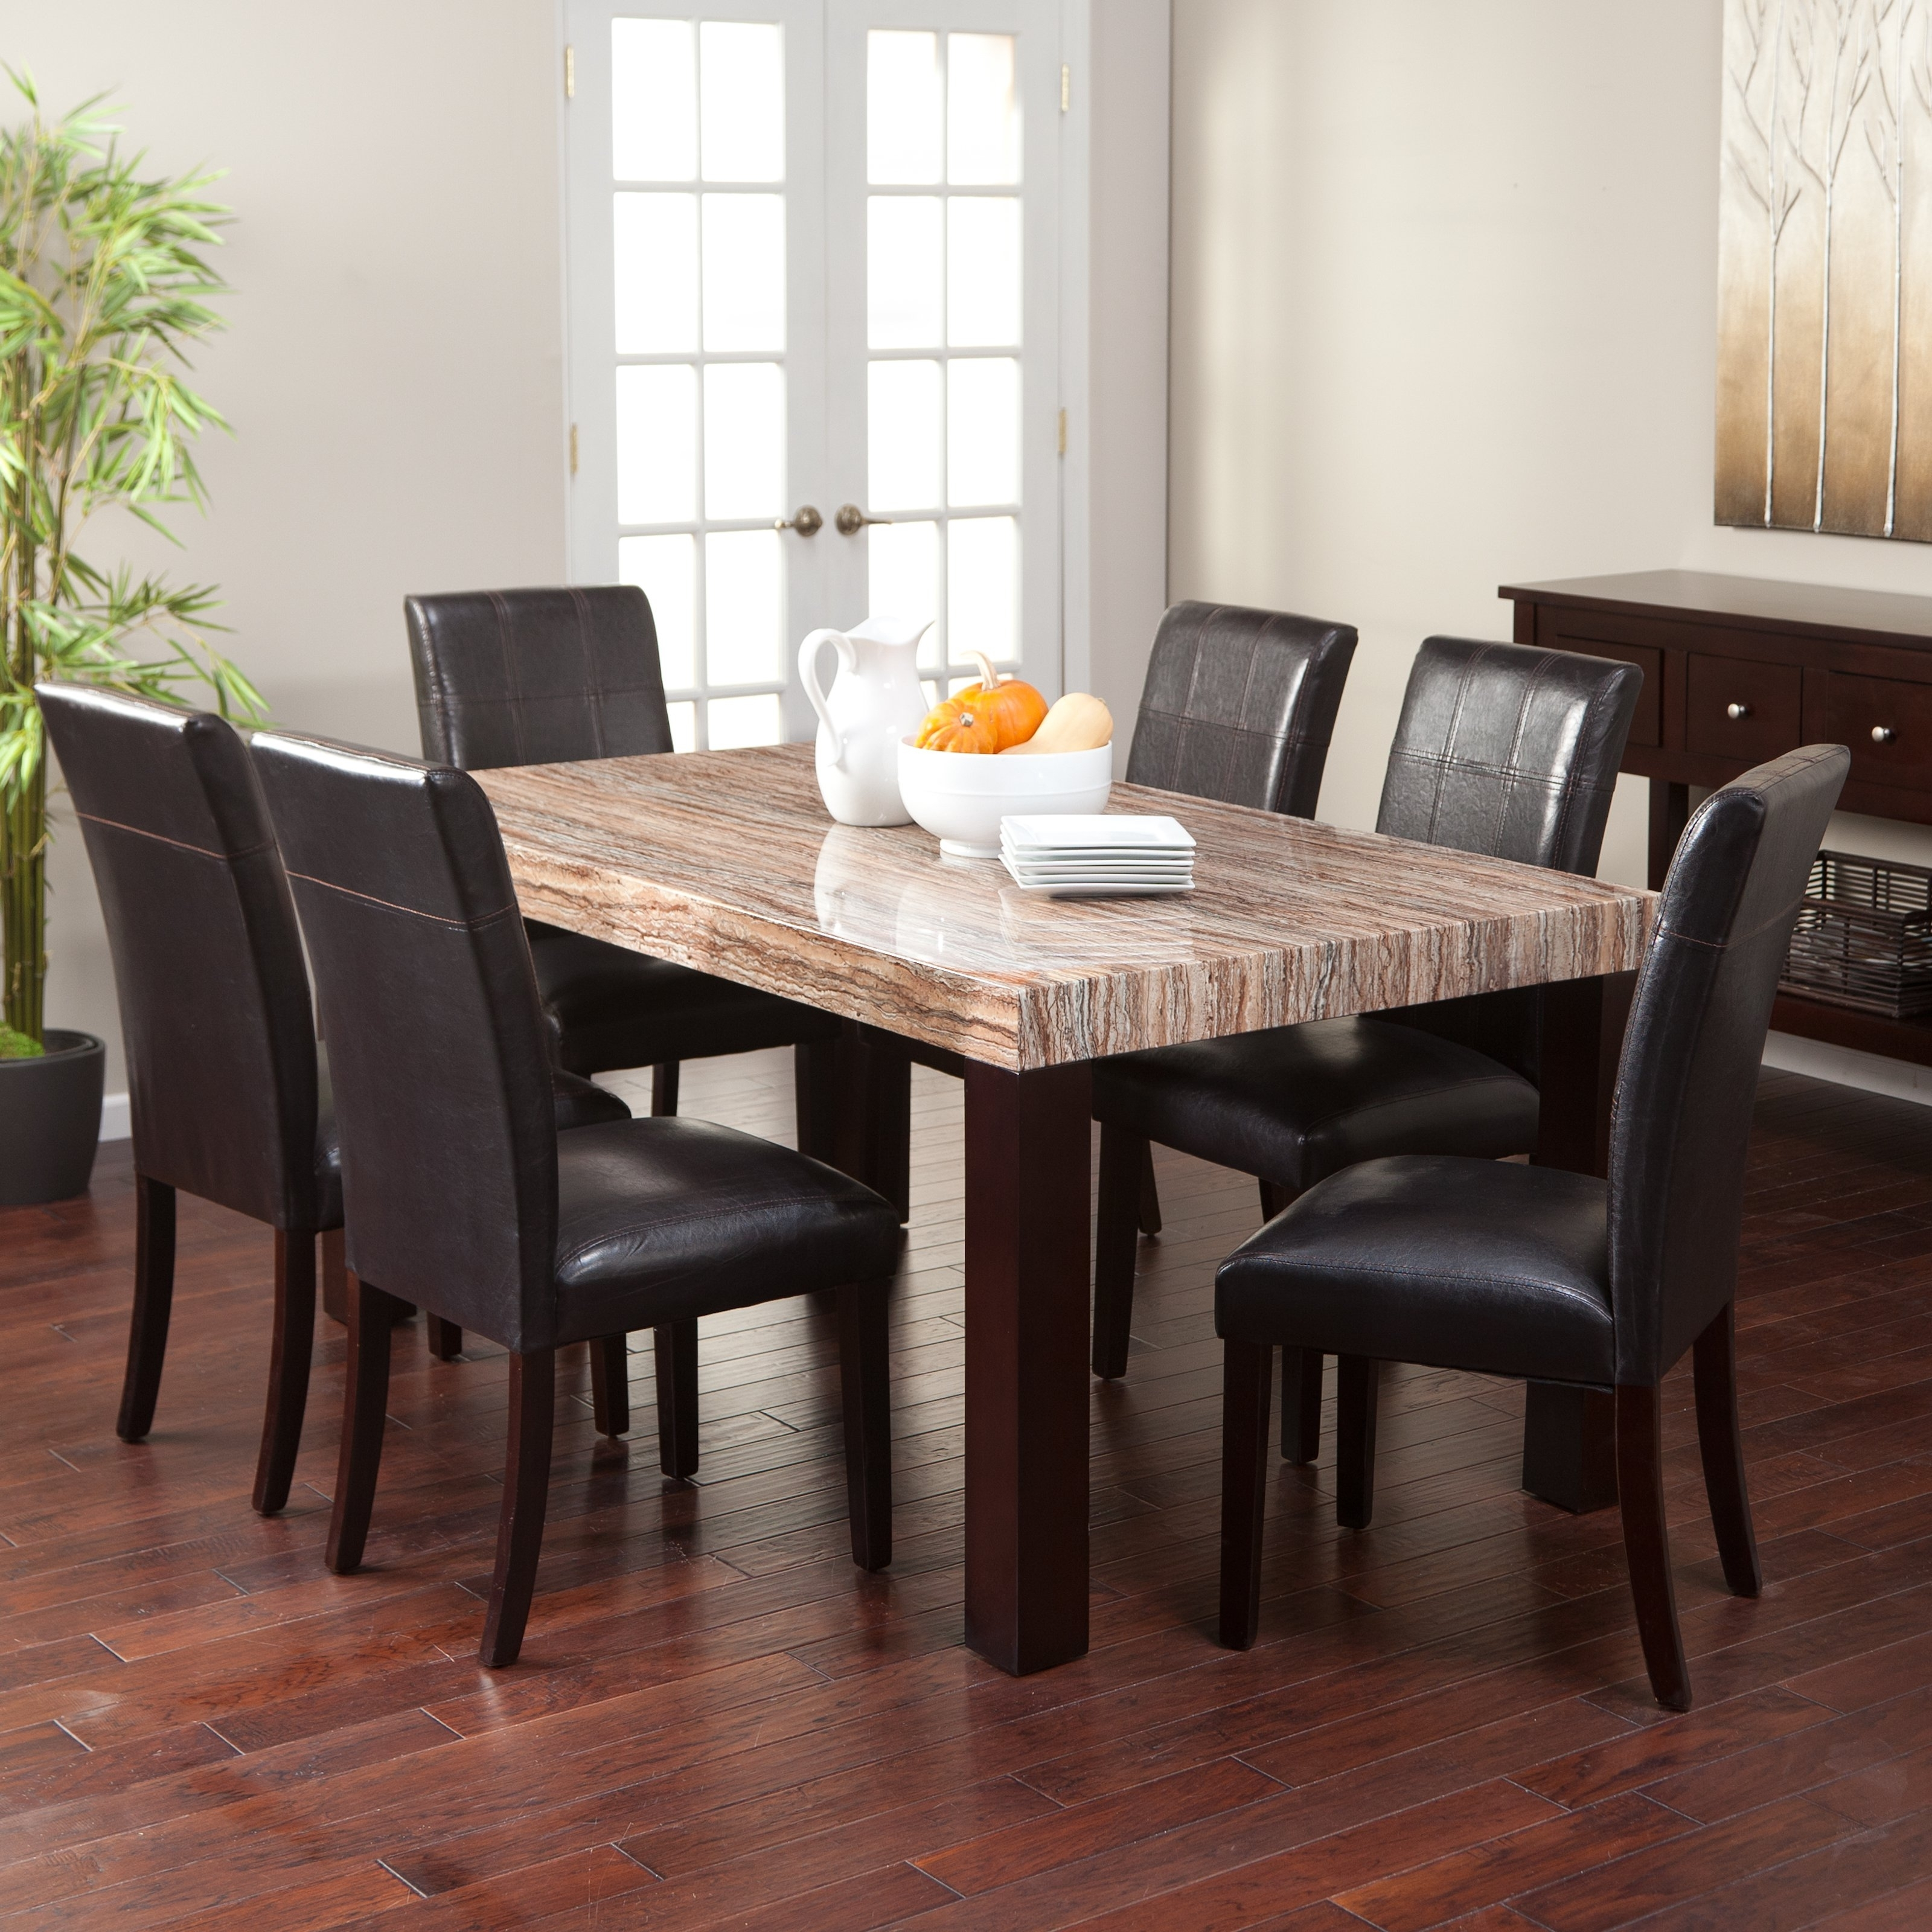 Best And Newest Carmine 7 Piece Dining Table Set (View 2 of 25)